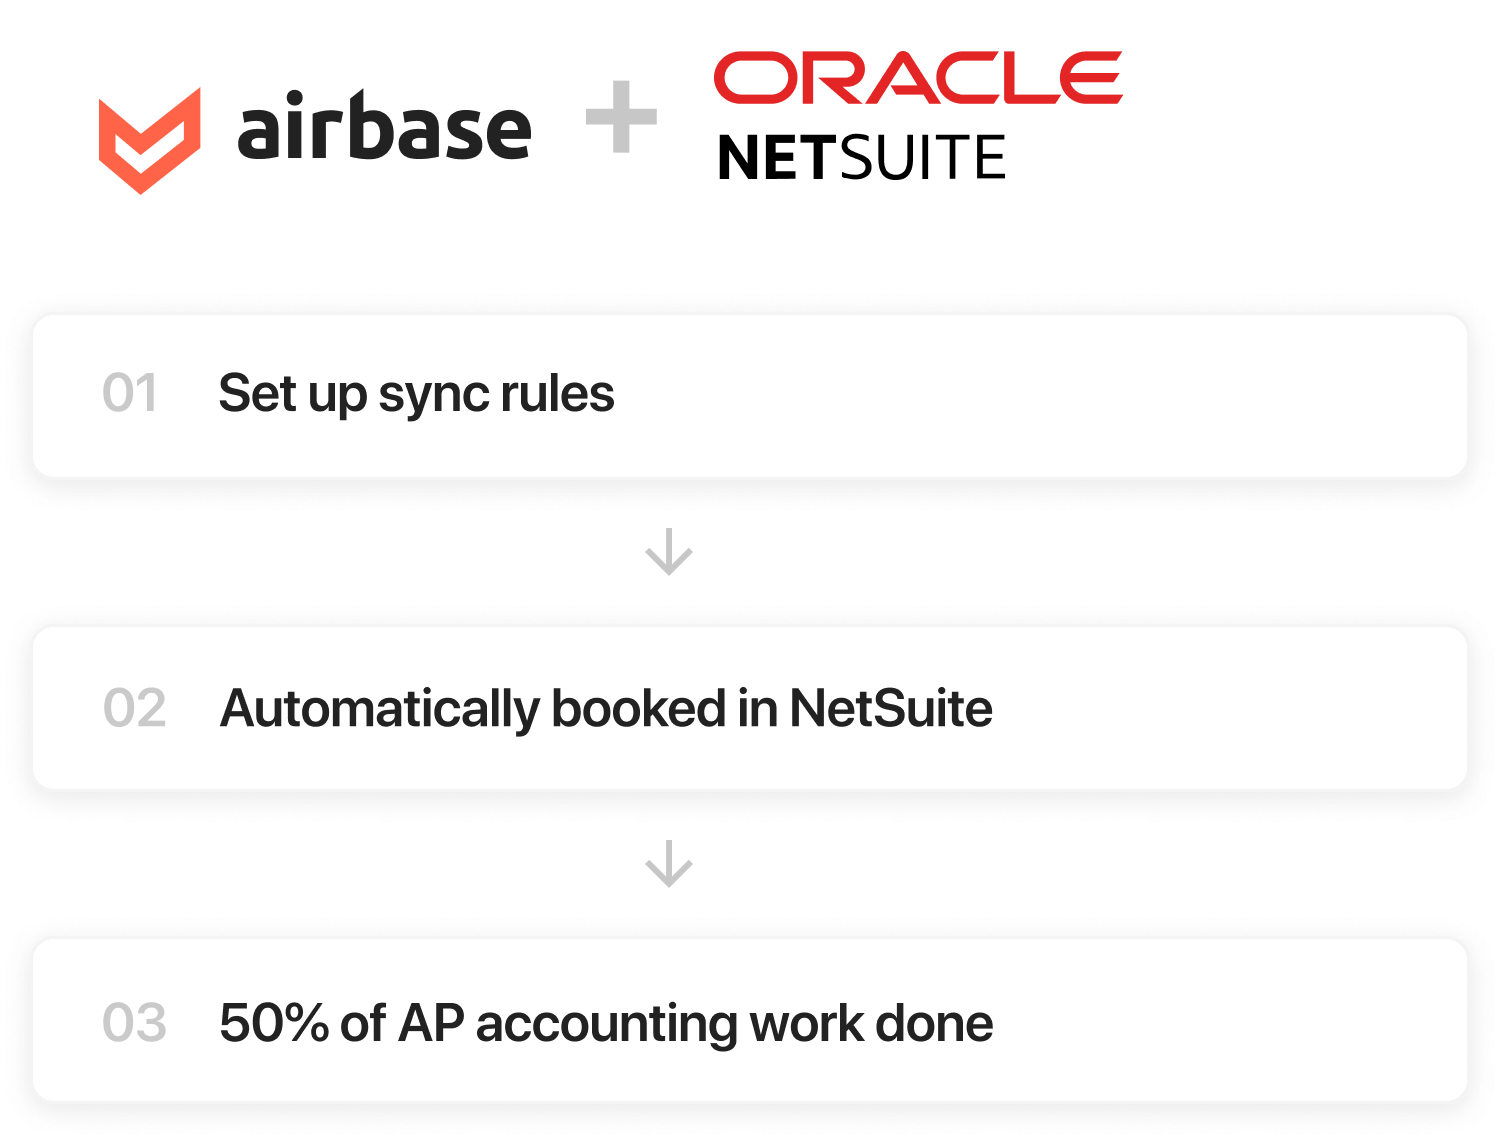 airbase + netsuite